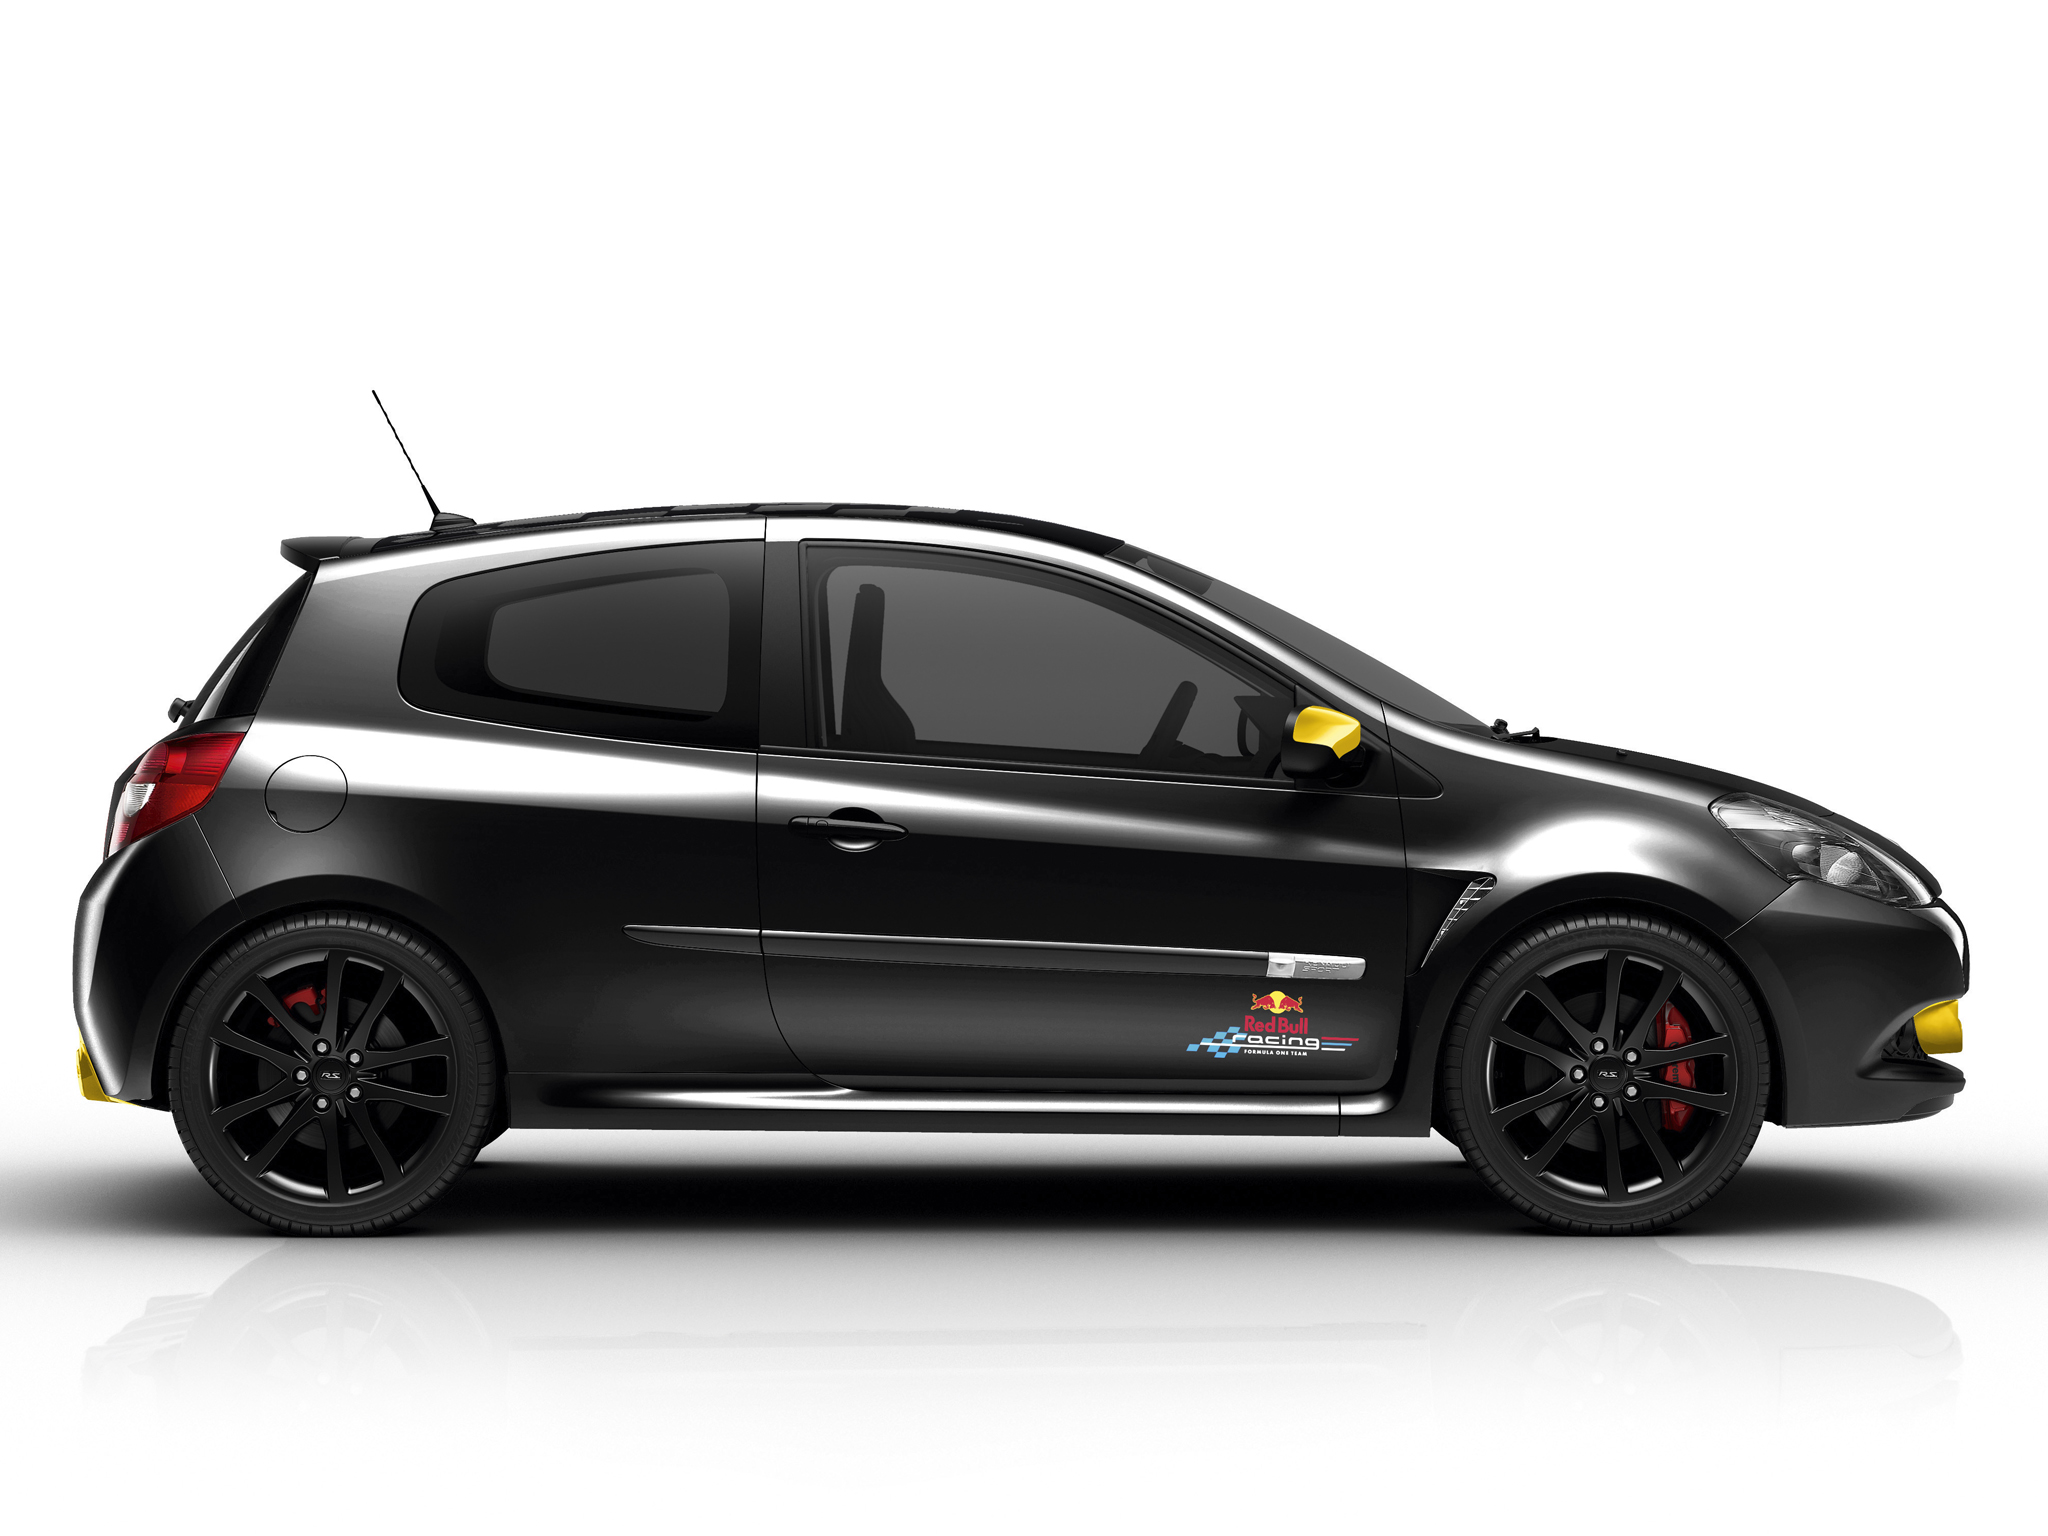 Renault Clio 3 R.S Red Bull Racing